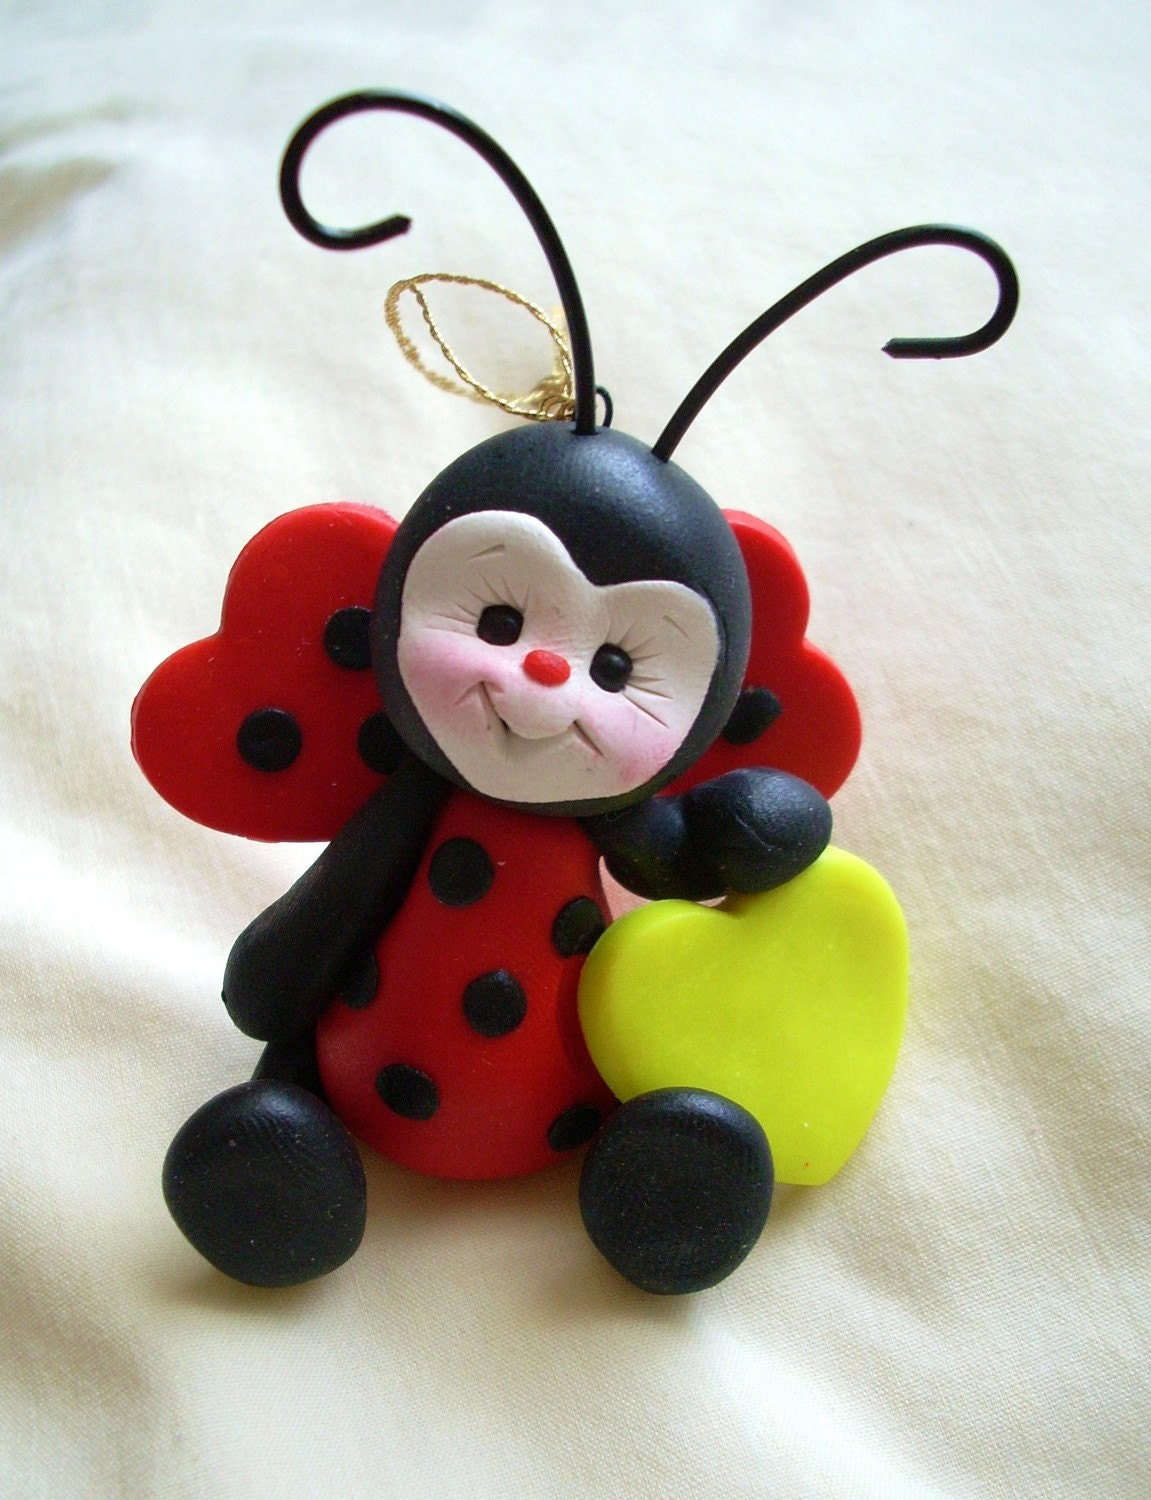 Ladybug Lady Bug Sculpture Figurine Gift Polymer Clay By